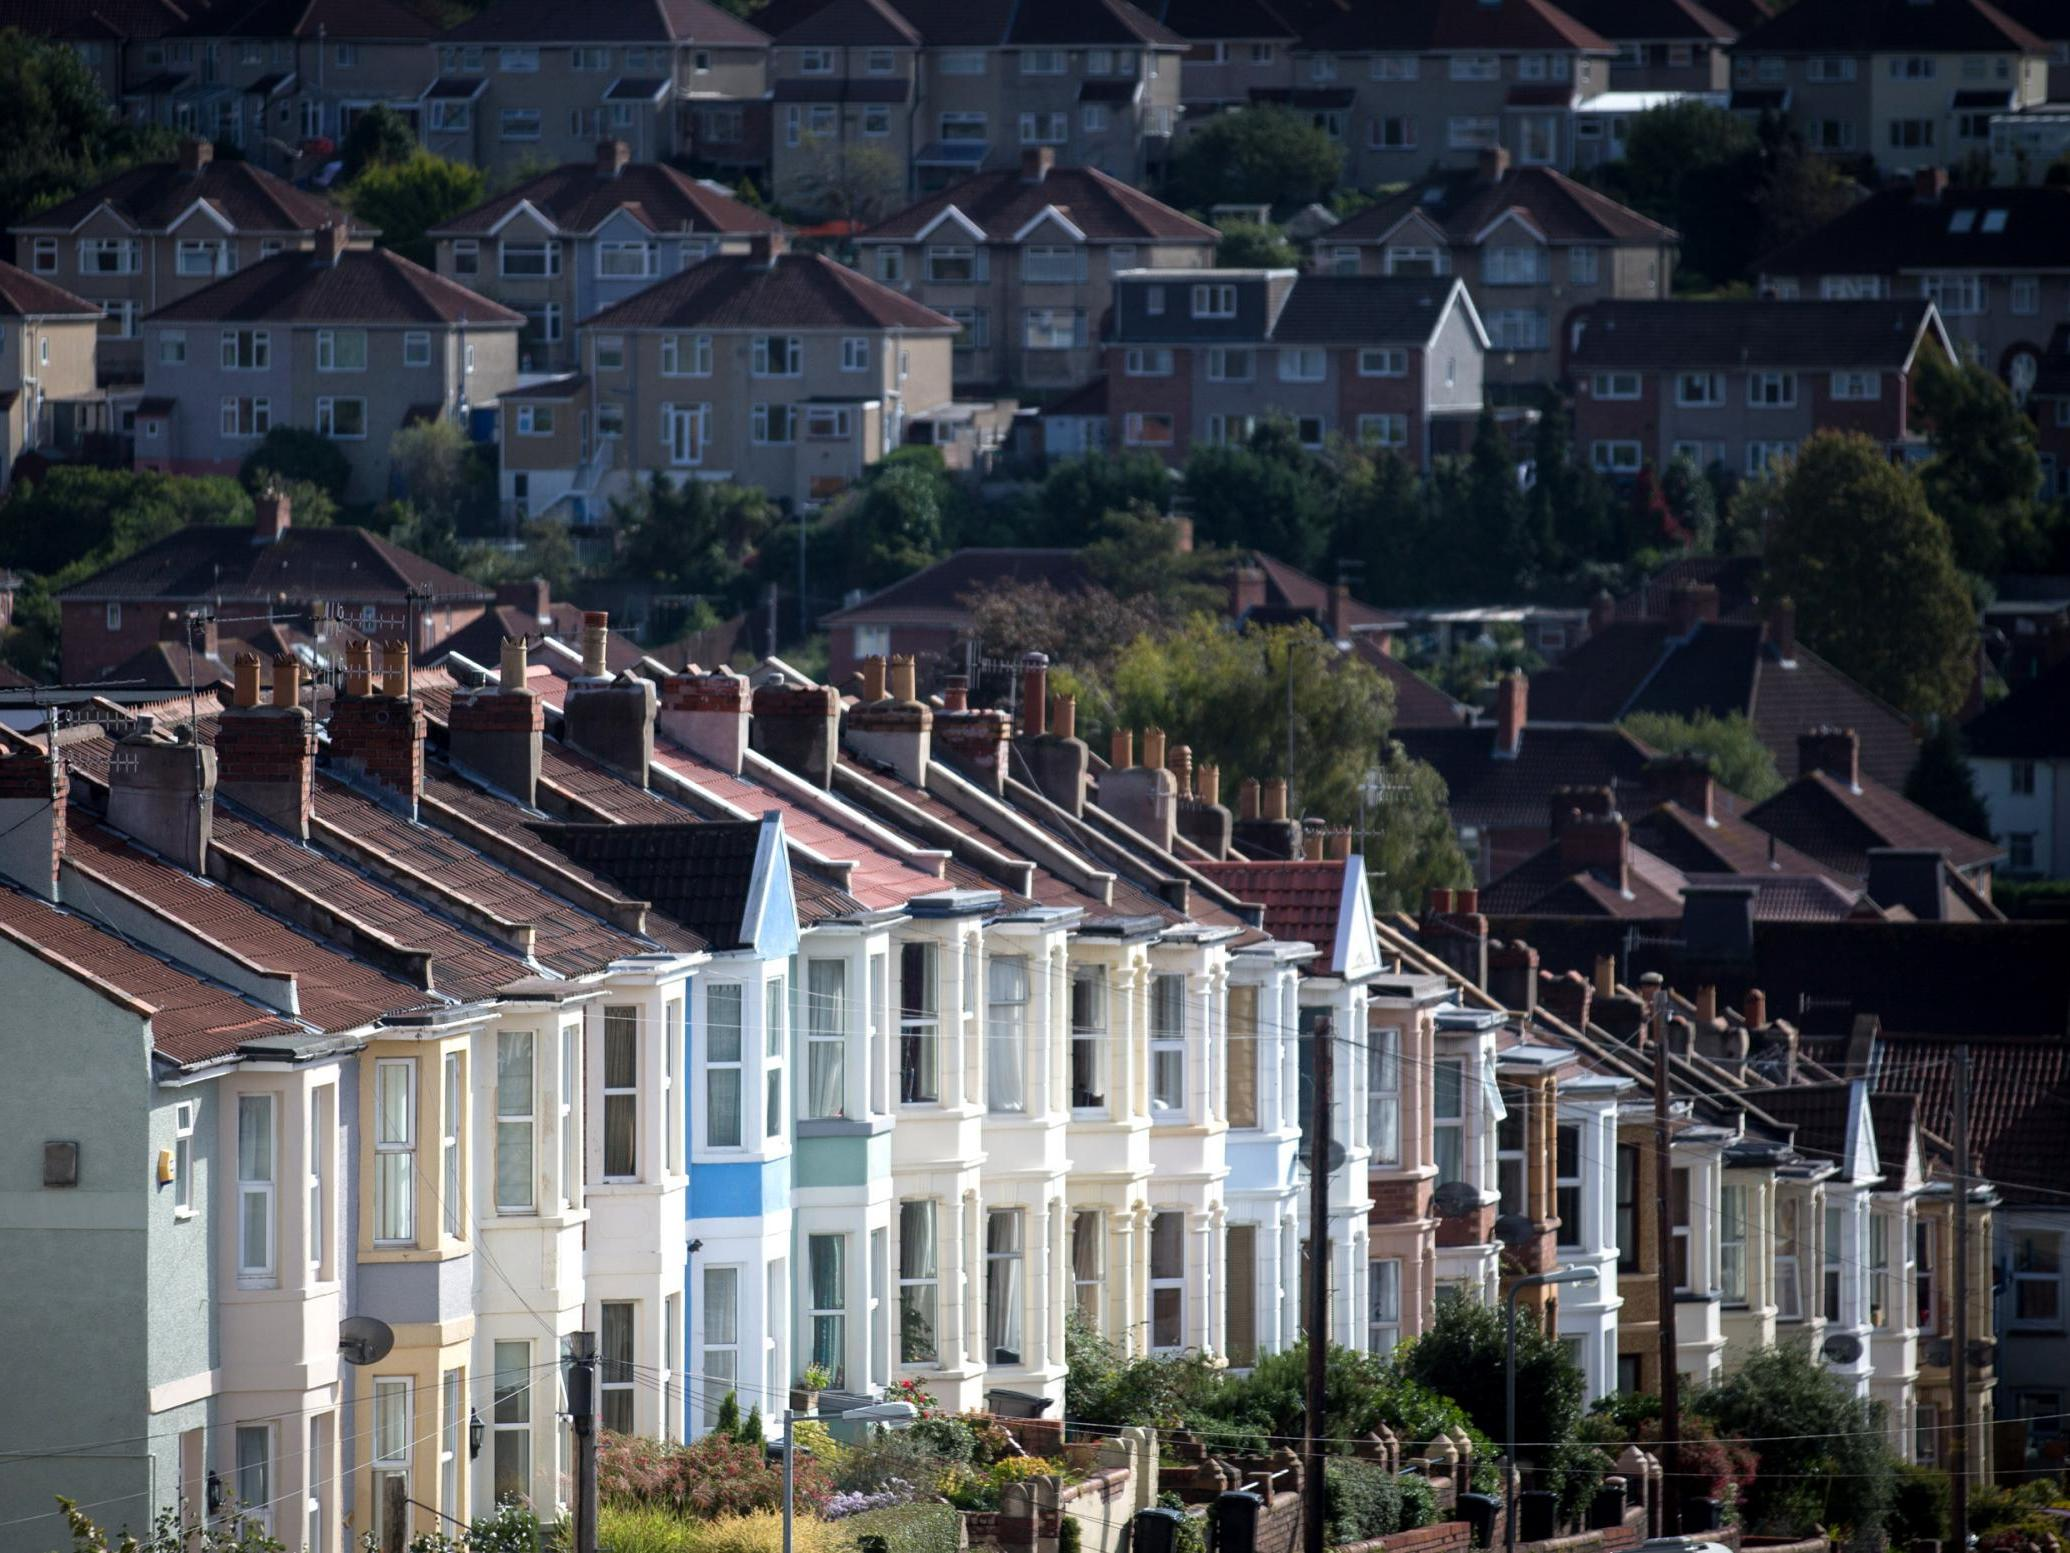 One in five parents will move house in five years due to low air quality, poll claims